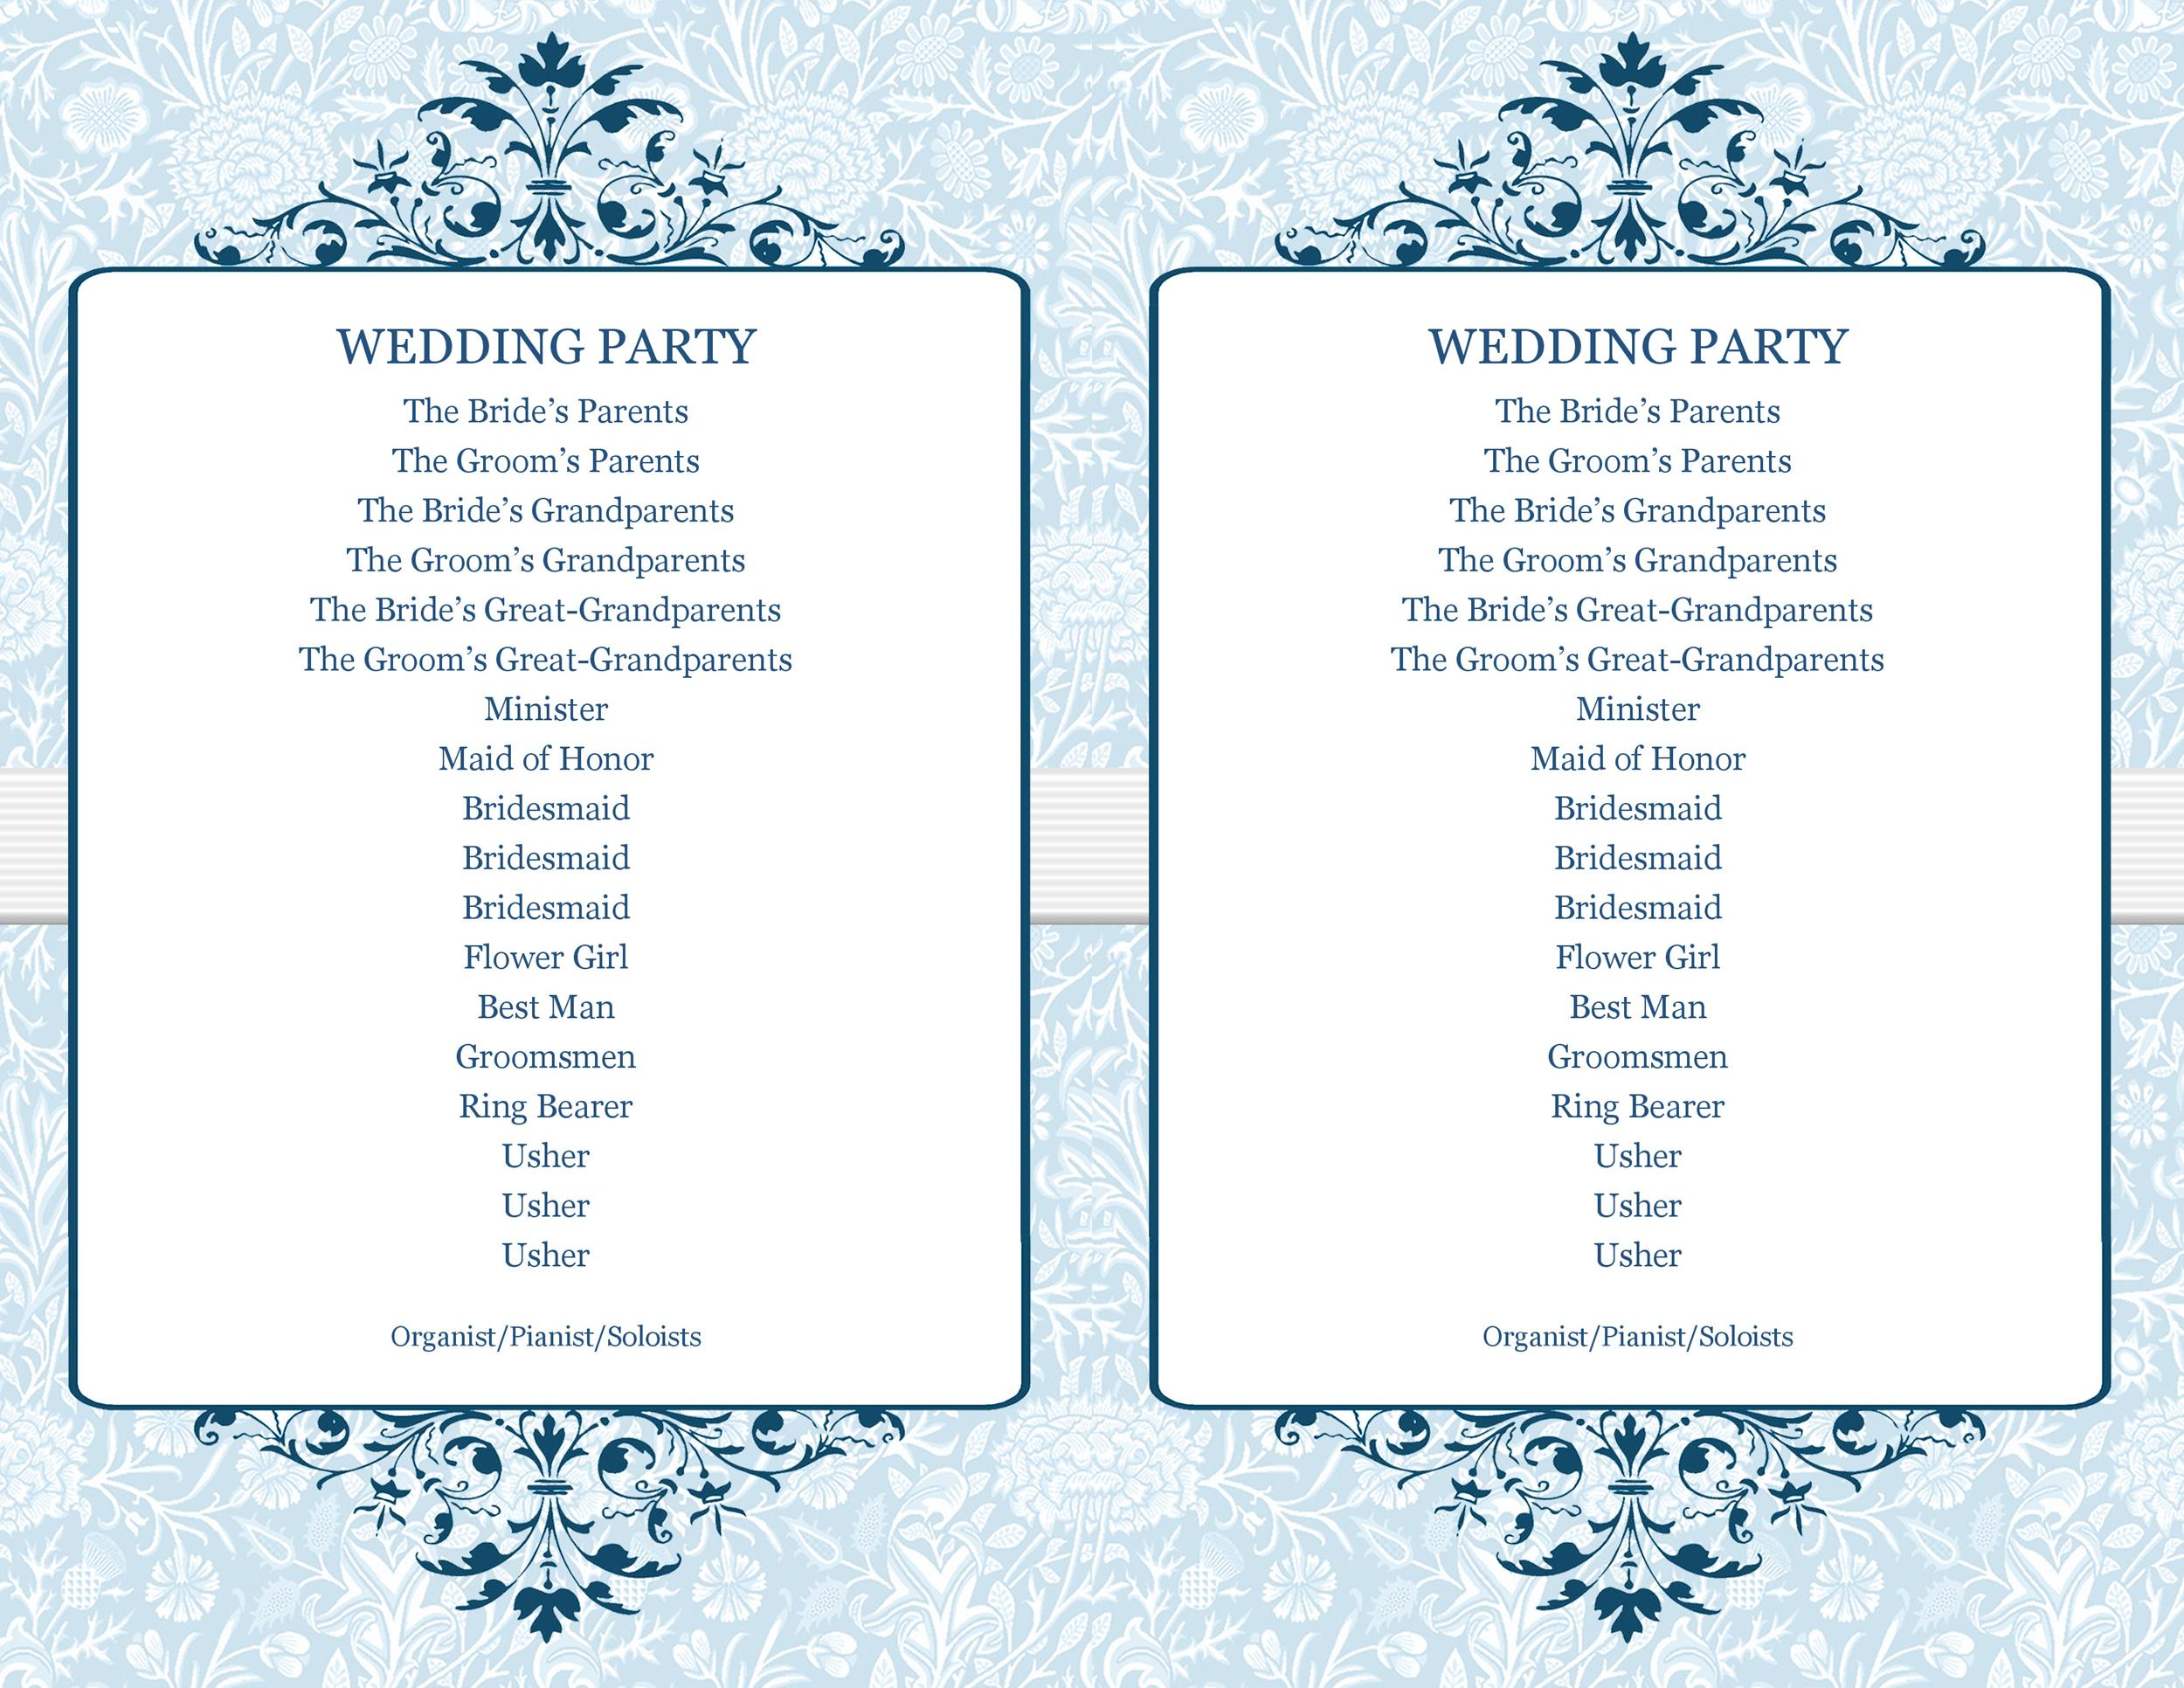 37 Printable Wedding Program Examples  Templates ᐅ Template Lab